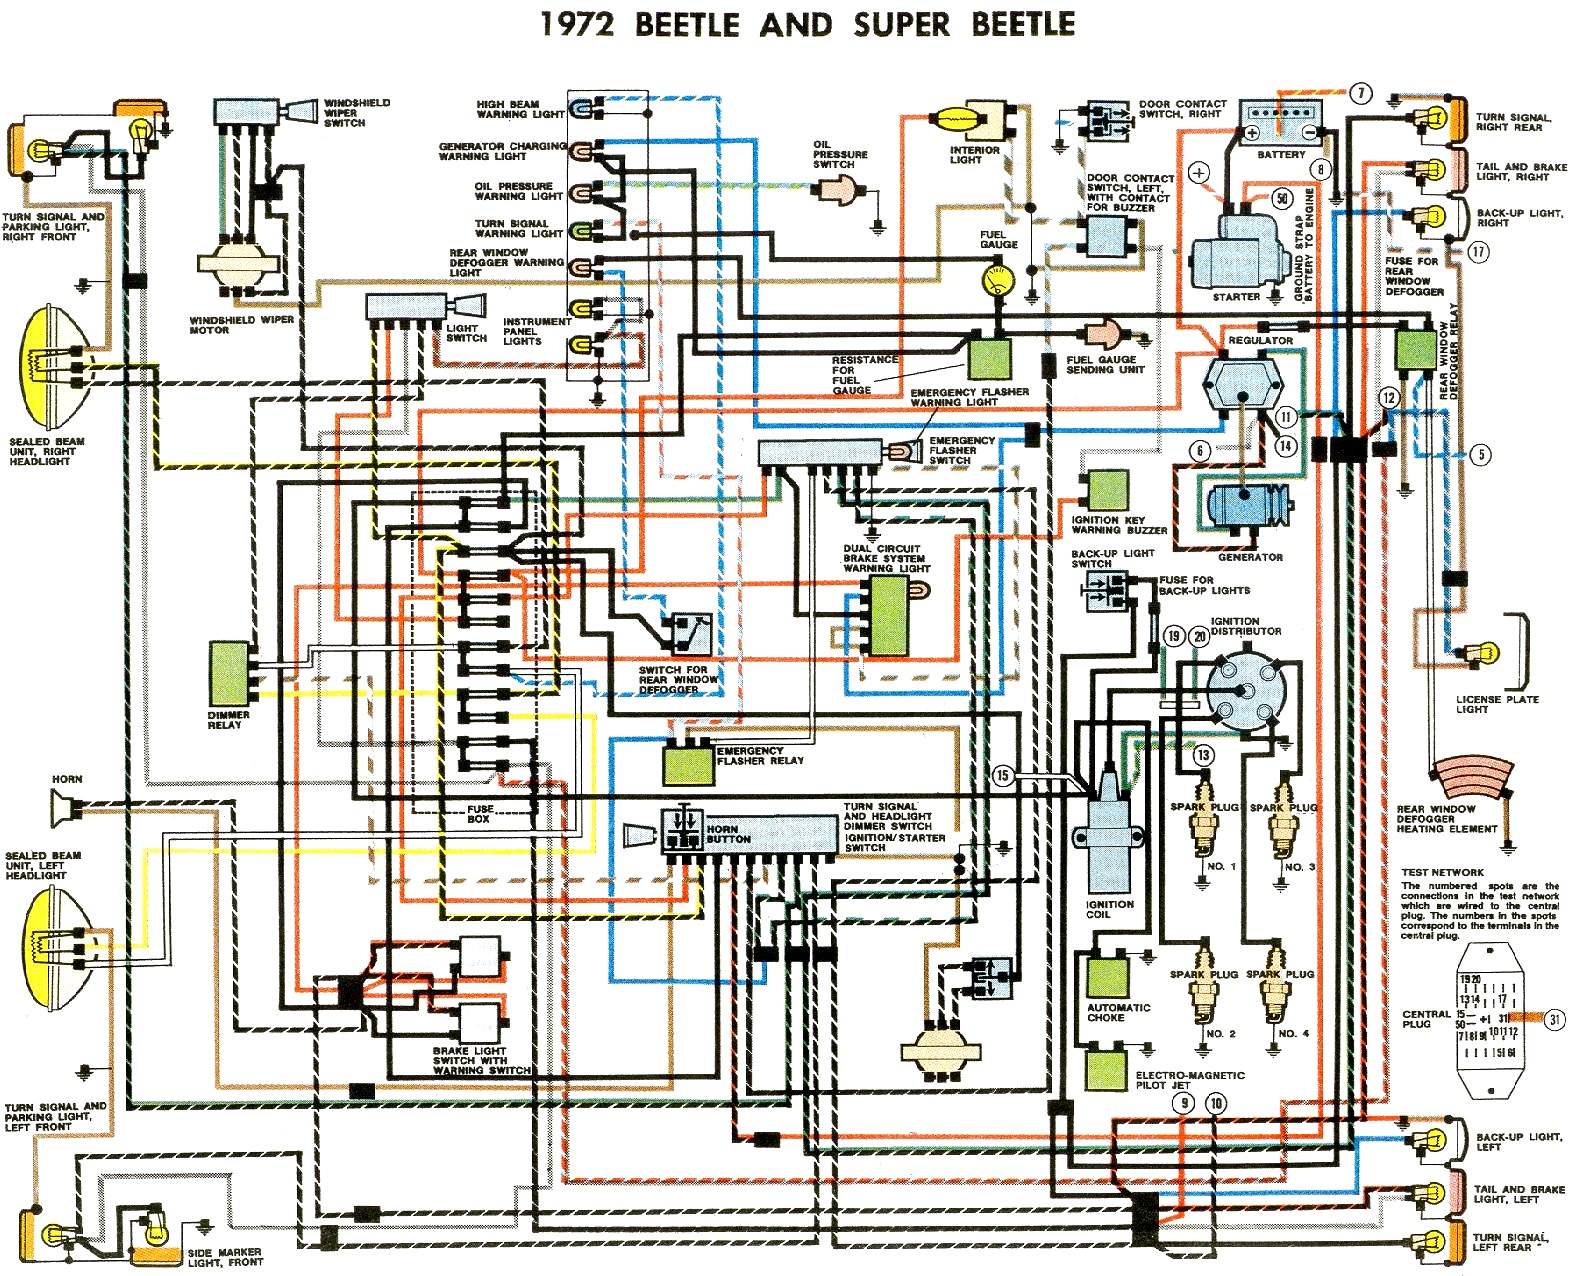 bug_72 1972 beetle wiring diagram thegoldenbug com 1971 vw beetle wiring diagram at honlapkeszites.co